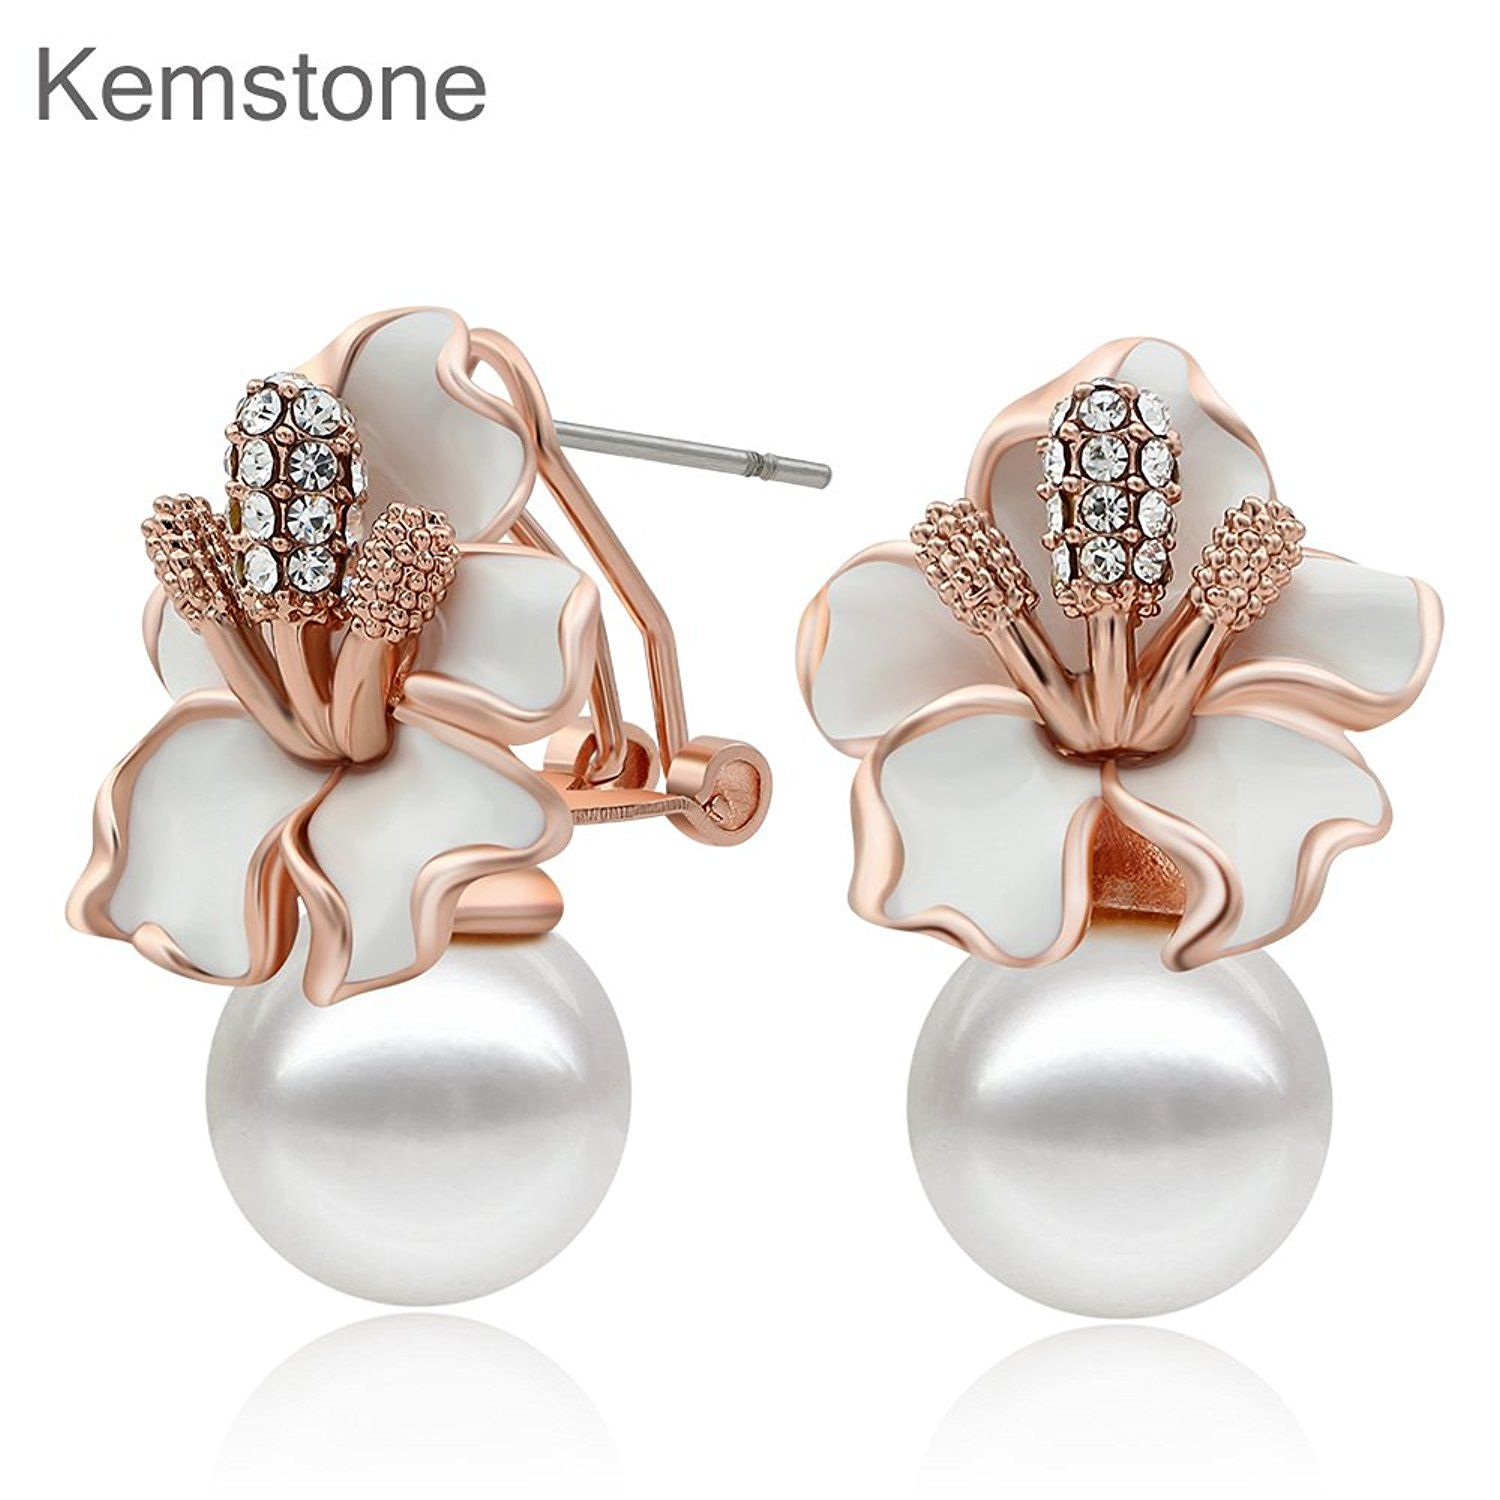 Kemstone Crystal Simulated Pearl Acrylic Flower Stud Earrings Women Jewelry y2uxYLcEw1